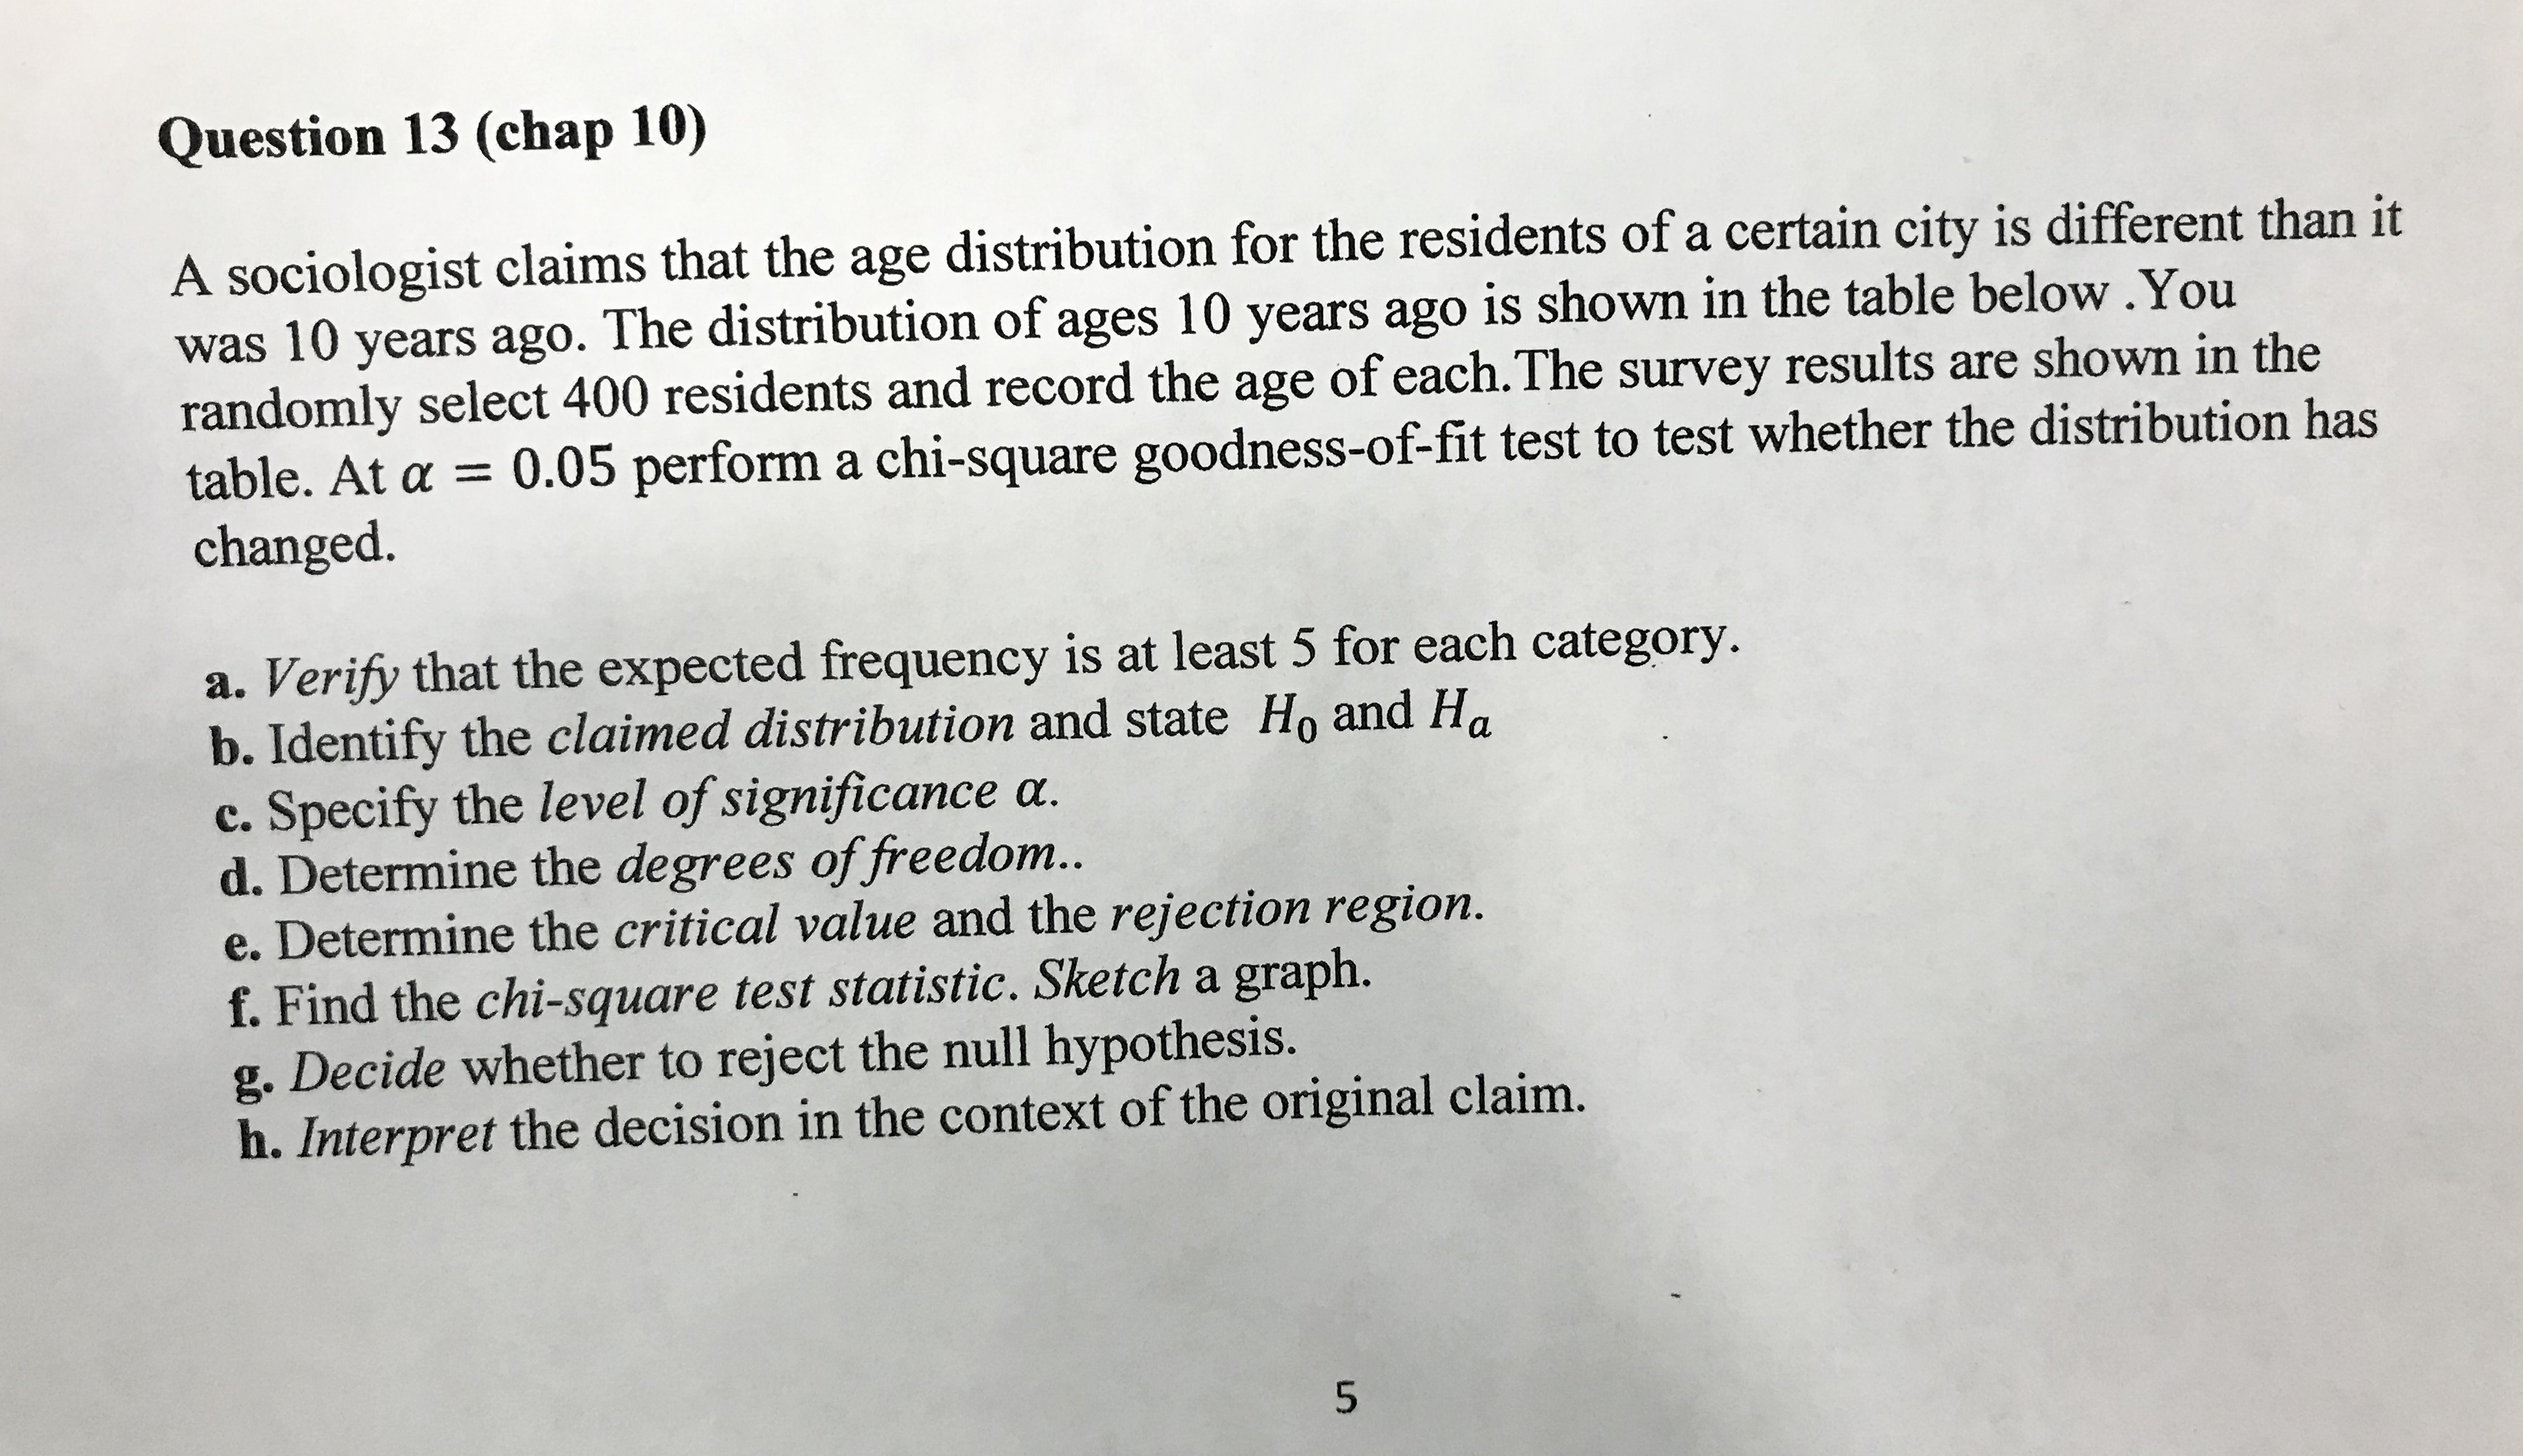 Question 13 (chap 10) A sociologist claims that the age distribution for the residents of a certain city is different than it was 10 years ago. The distribution of ages 10 years ago is shown in the table below.You randomly select 400 residents and record the age of each.The survey results are shown in the table. At a = 0.05 perform a chi-square goodness-of-fit test to test whether the distribution has changed. a. Verify that the expected frequency is at least 5 for each category. b. Identify the claimed distribution and state Ho and Ha c. Specify the level of significance a. d. Determine the degrees of freedom.. e. Determine the critical value and the rejection region. f. Find the chi-square test statistic. Sketch a graph. g. Decide whether to reject the null hypothesis. h. Interpret the decision in the context of the original claim.